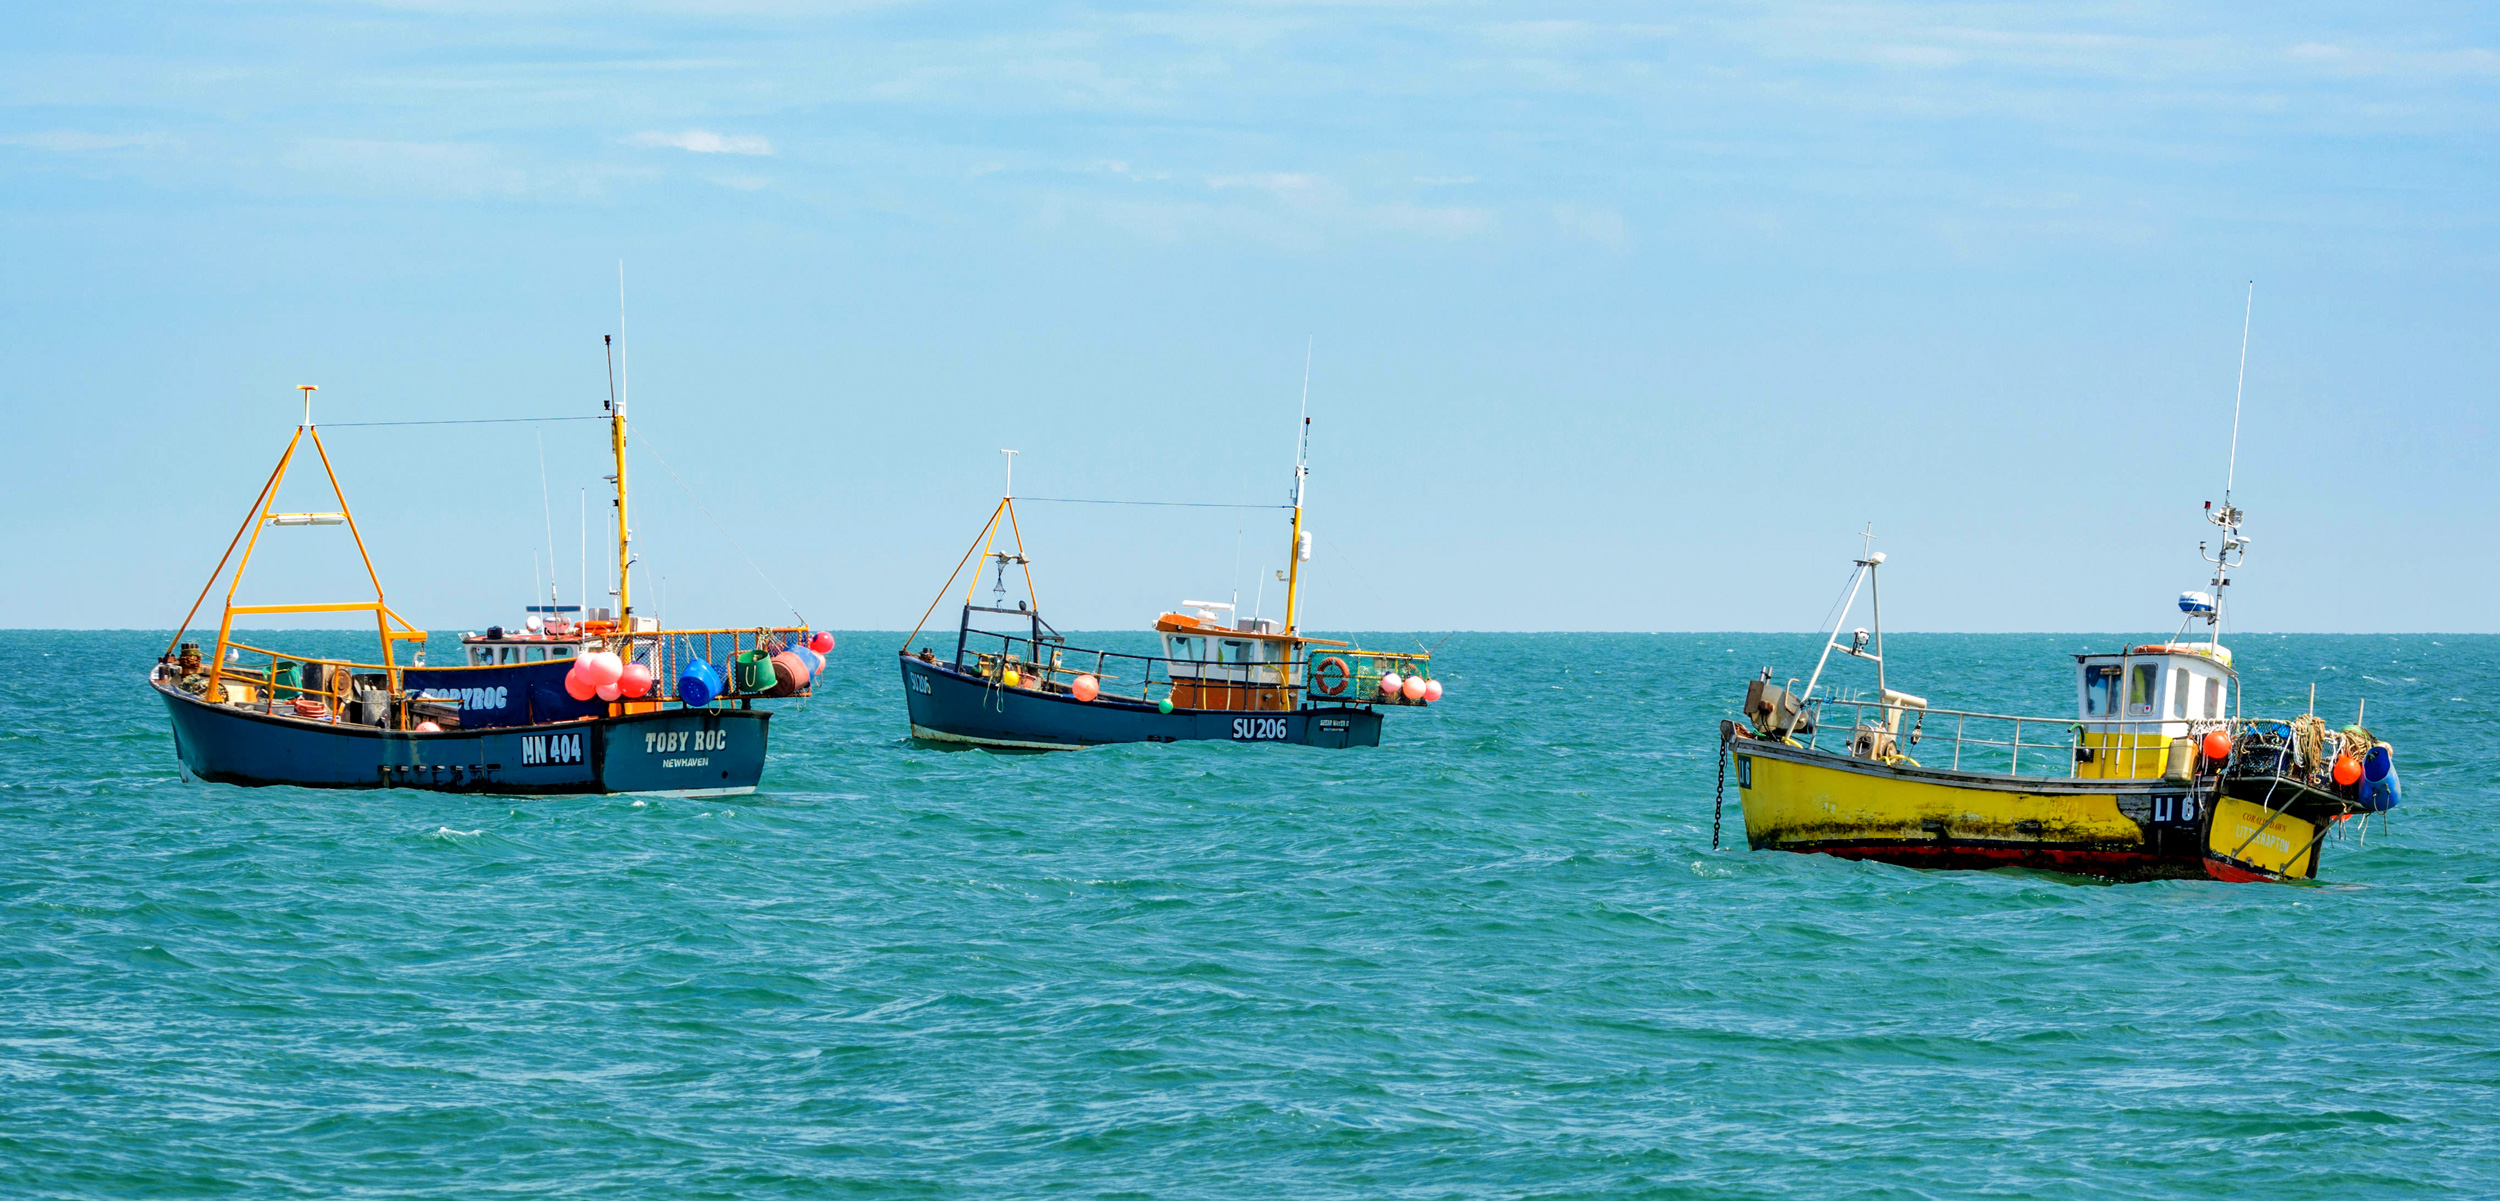 fishing boats in the English Channel